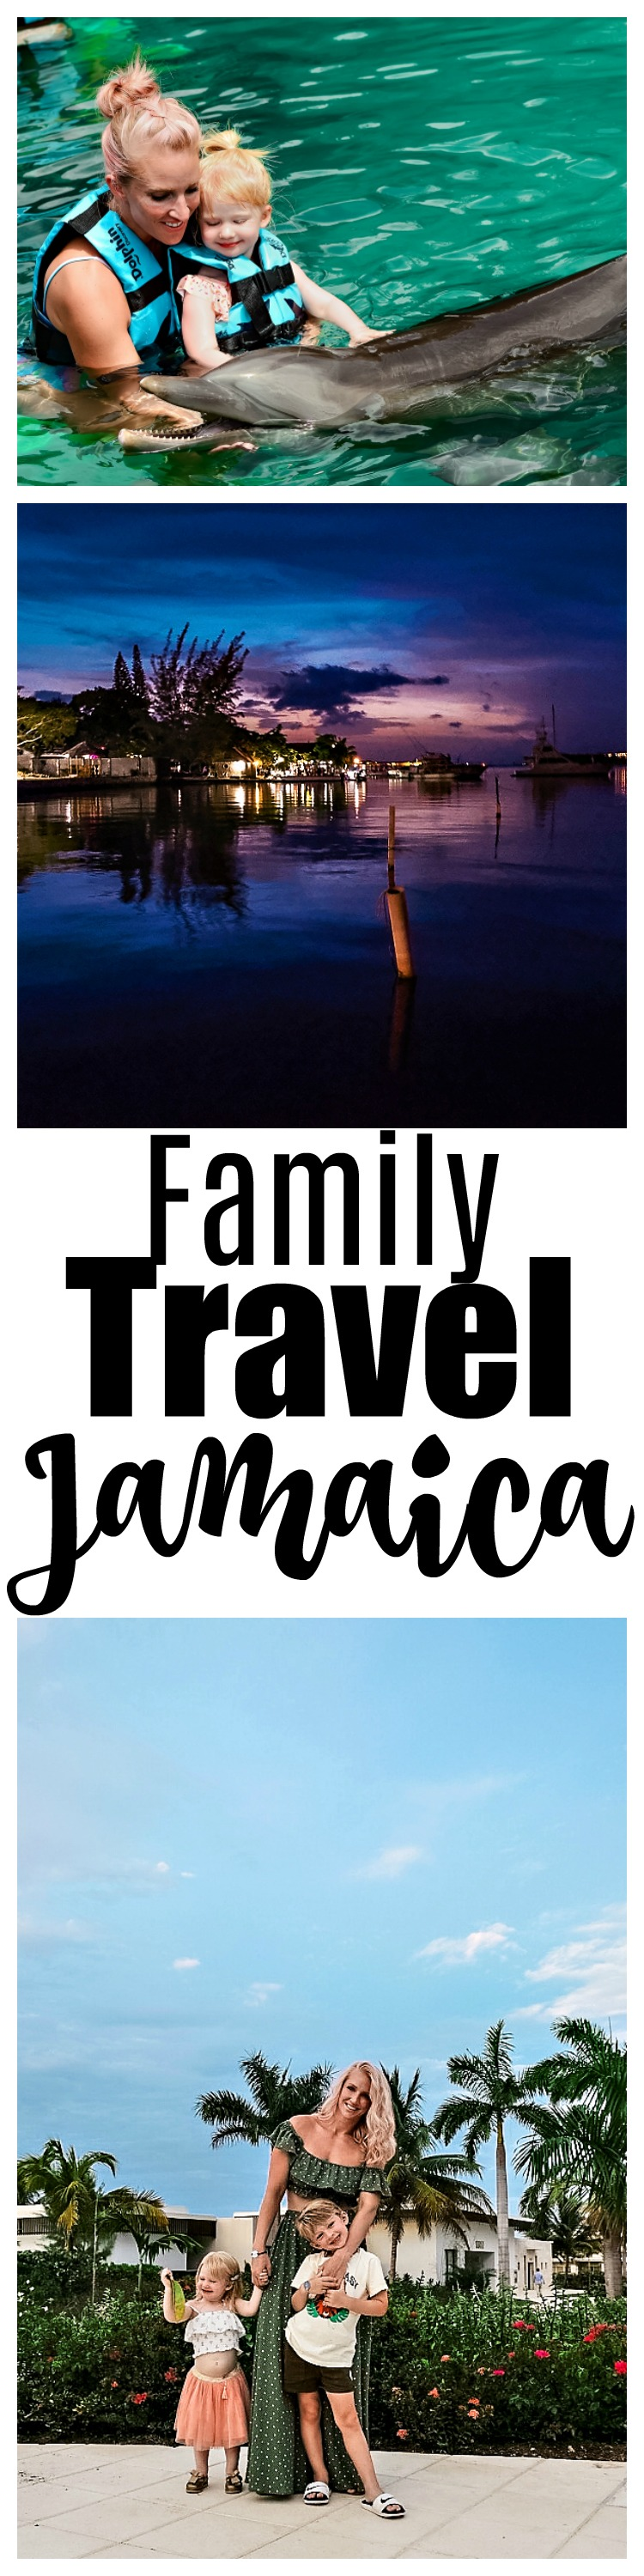 The Royalton White Sands | Vacation | Dining | Activities | Swimming with Dolphins | Family Trip to Jamaica - Travel Guide featured by popular Atlanta travel blogger Happily Hughes